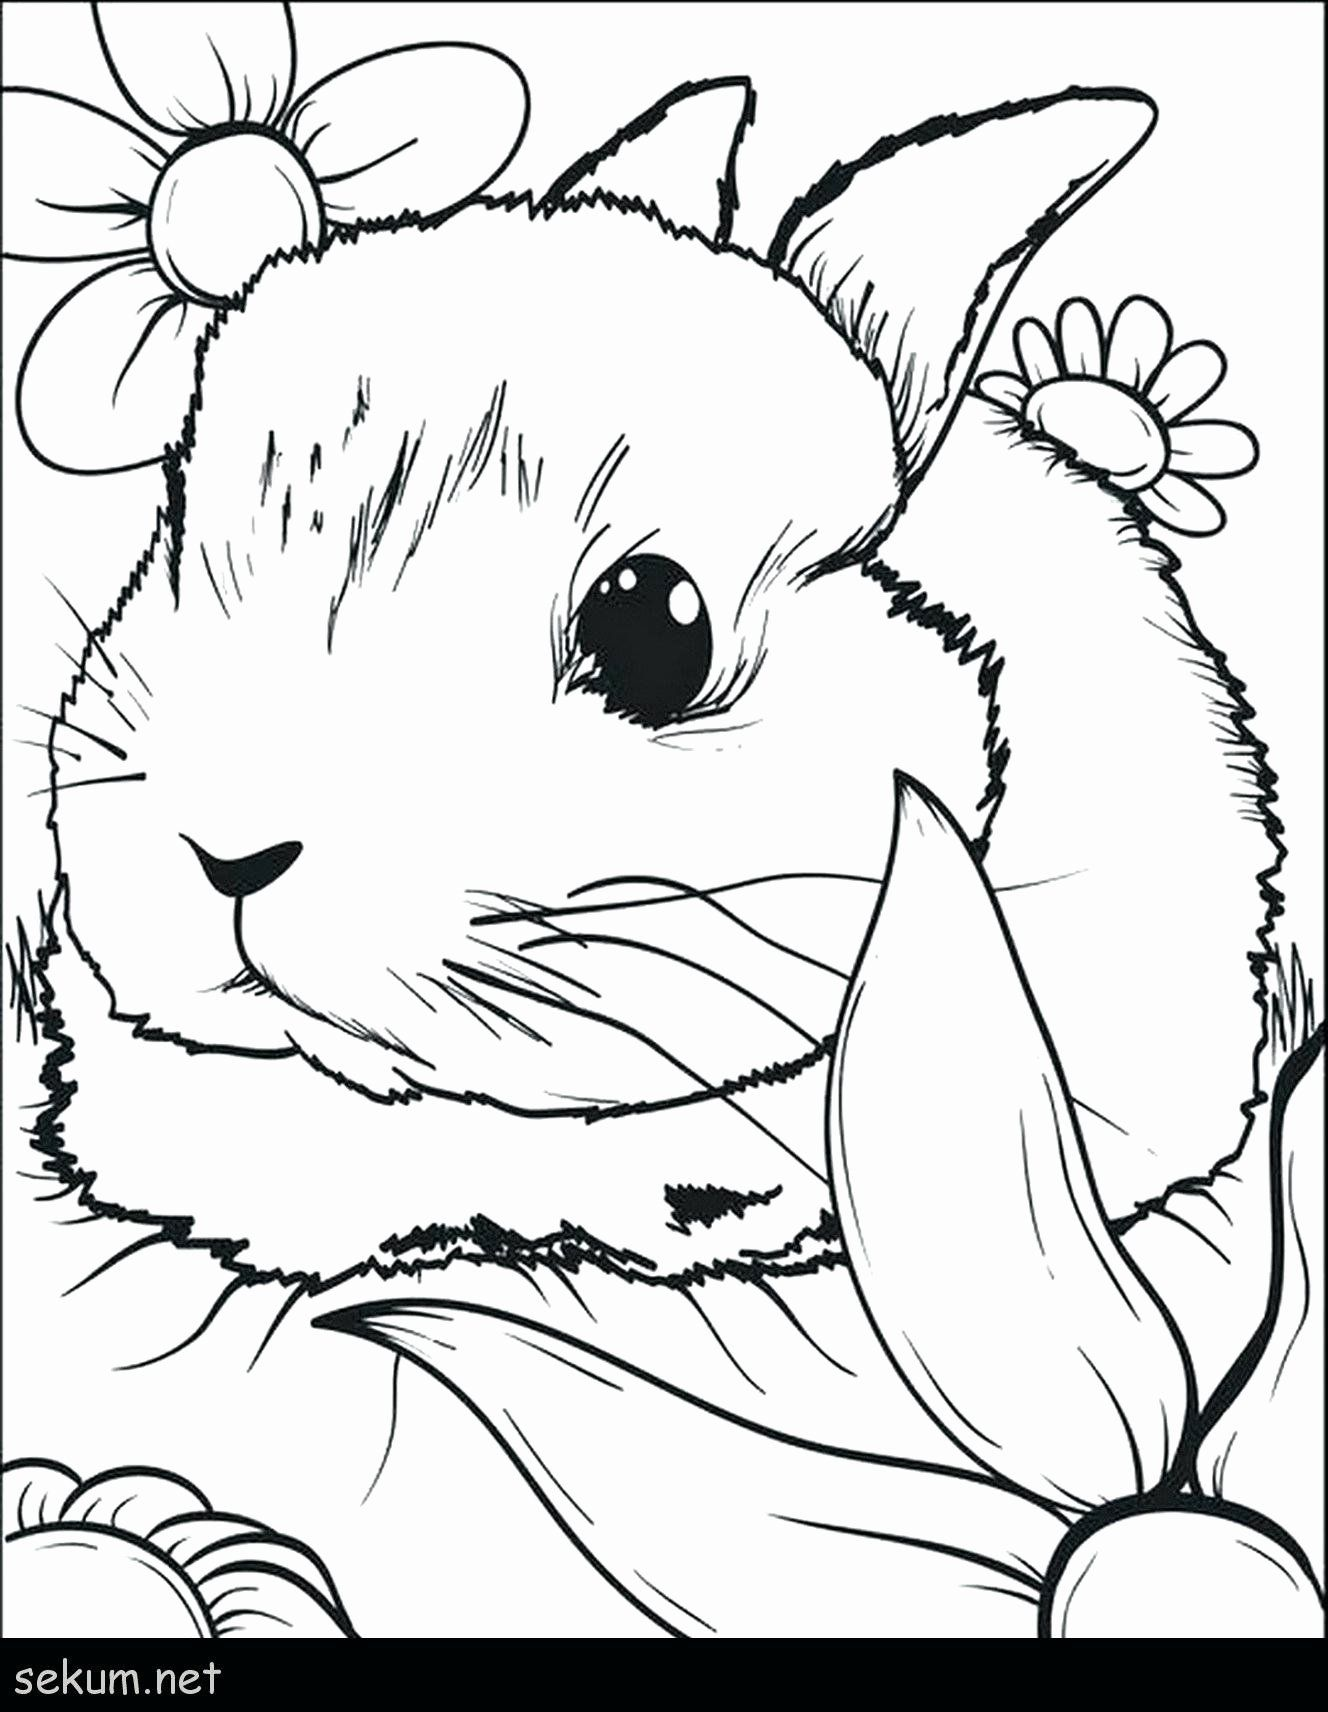 Coloring Pages Of A Rabbit Beautiful Coloring Pages Top Dandy Rabbit Coloring For Toddlers Cute Bunny Coloring Pages Cute Coloring Pages Easter Bunny Colouring